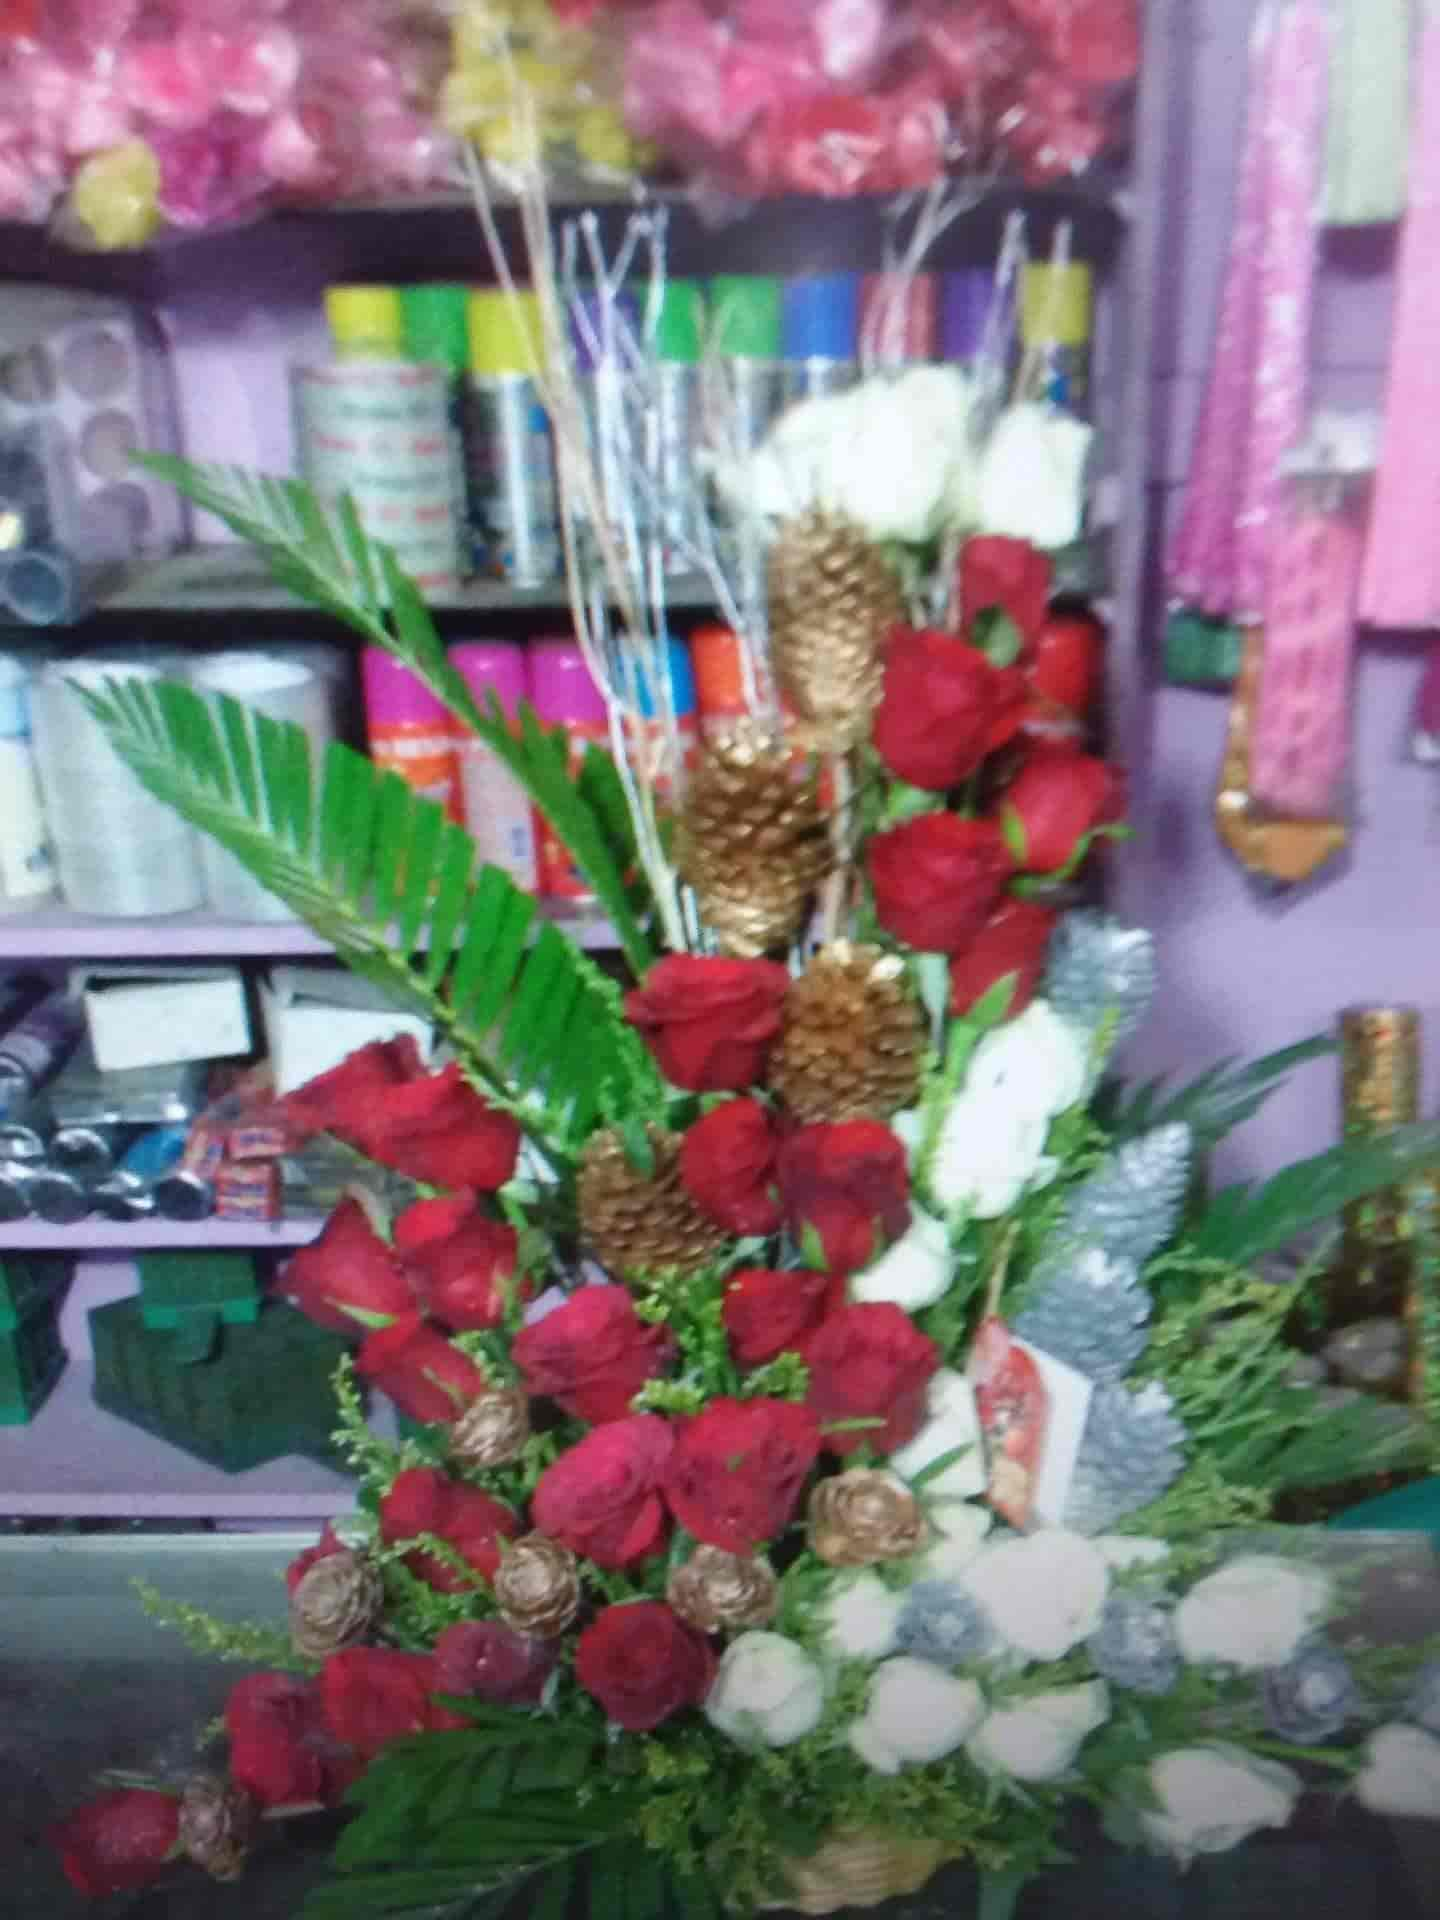 Master\u0027s Fresh Flowers \u0026 Bouquet Shop, Nagercoil Town